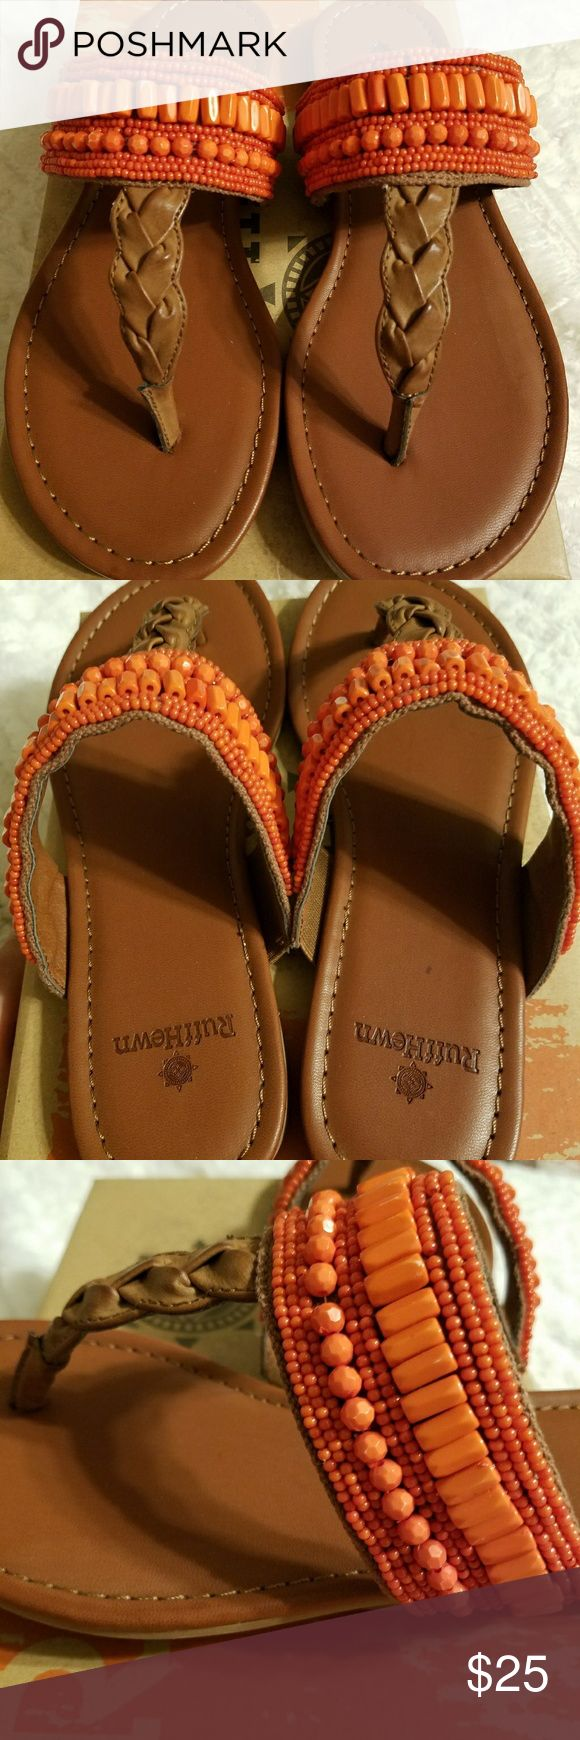 Ruff Hewn sandals NWT -  tan with bright orange/coral detail. Ruff Hewn Shoes